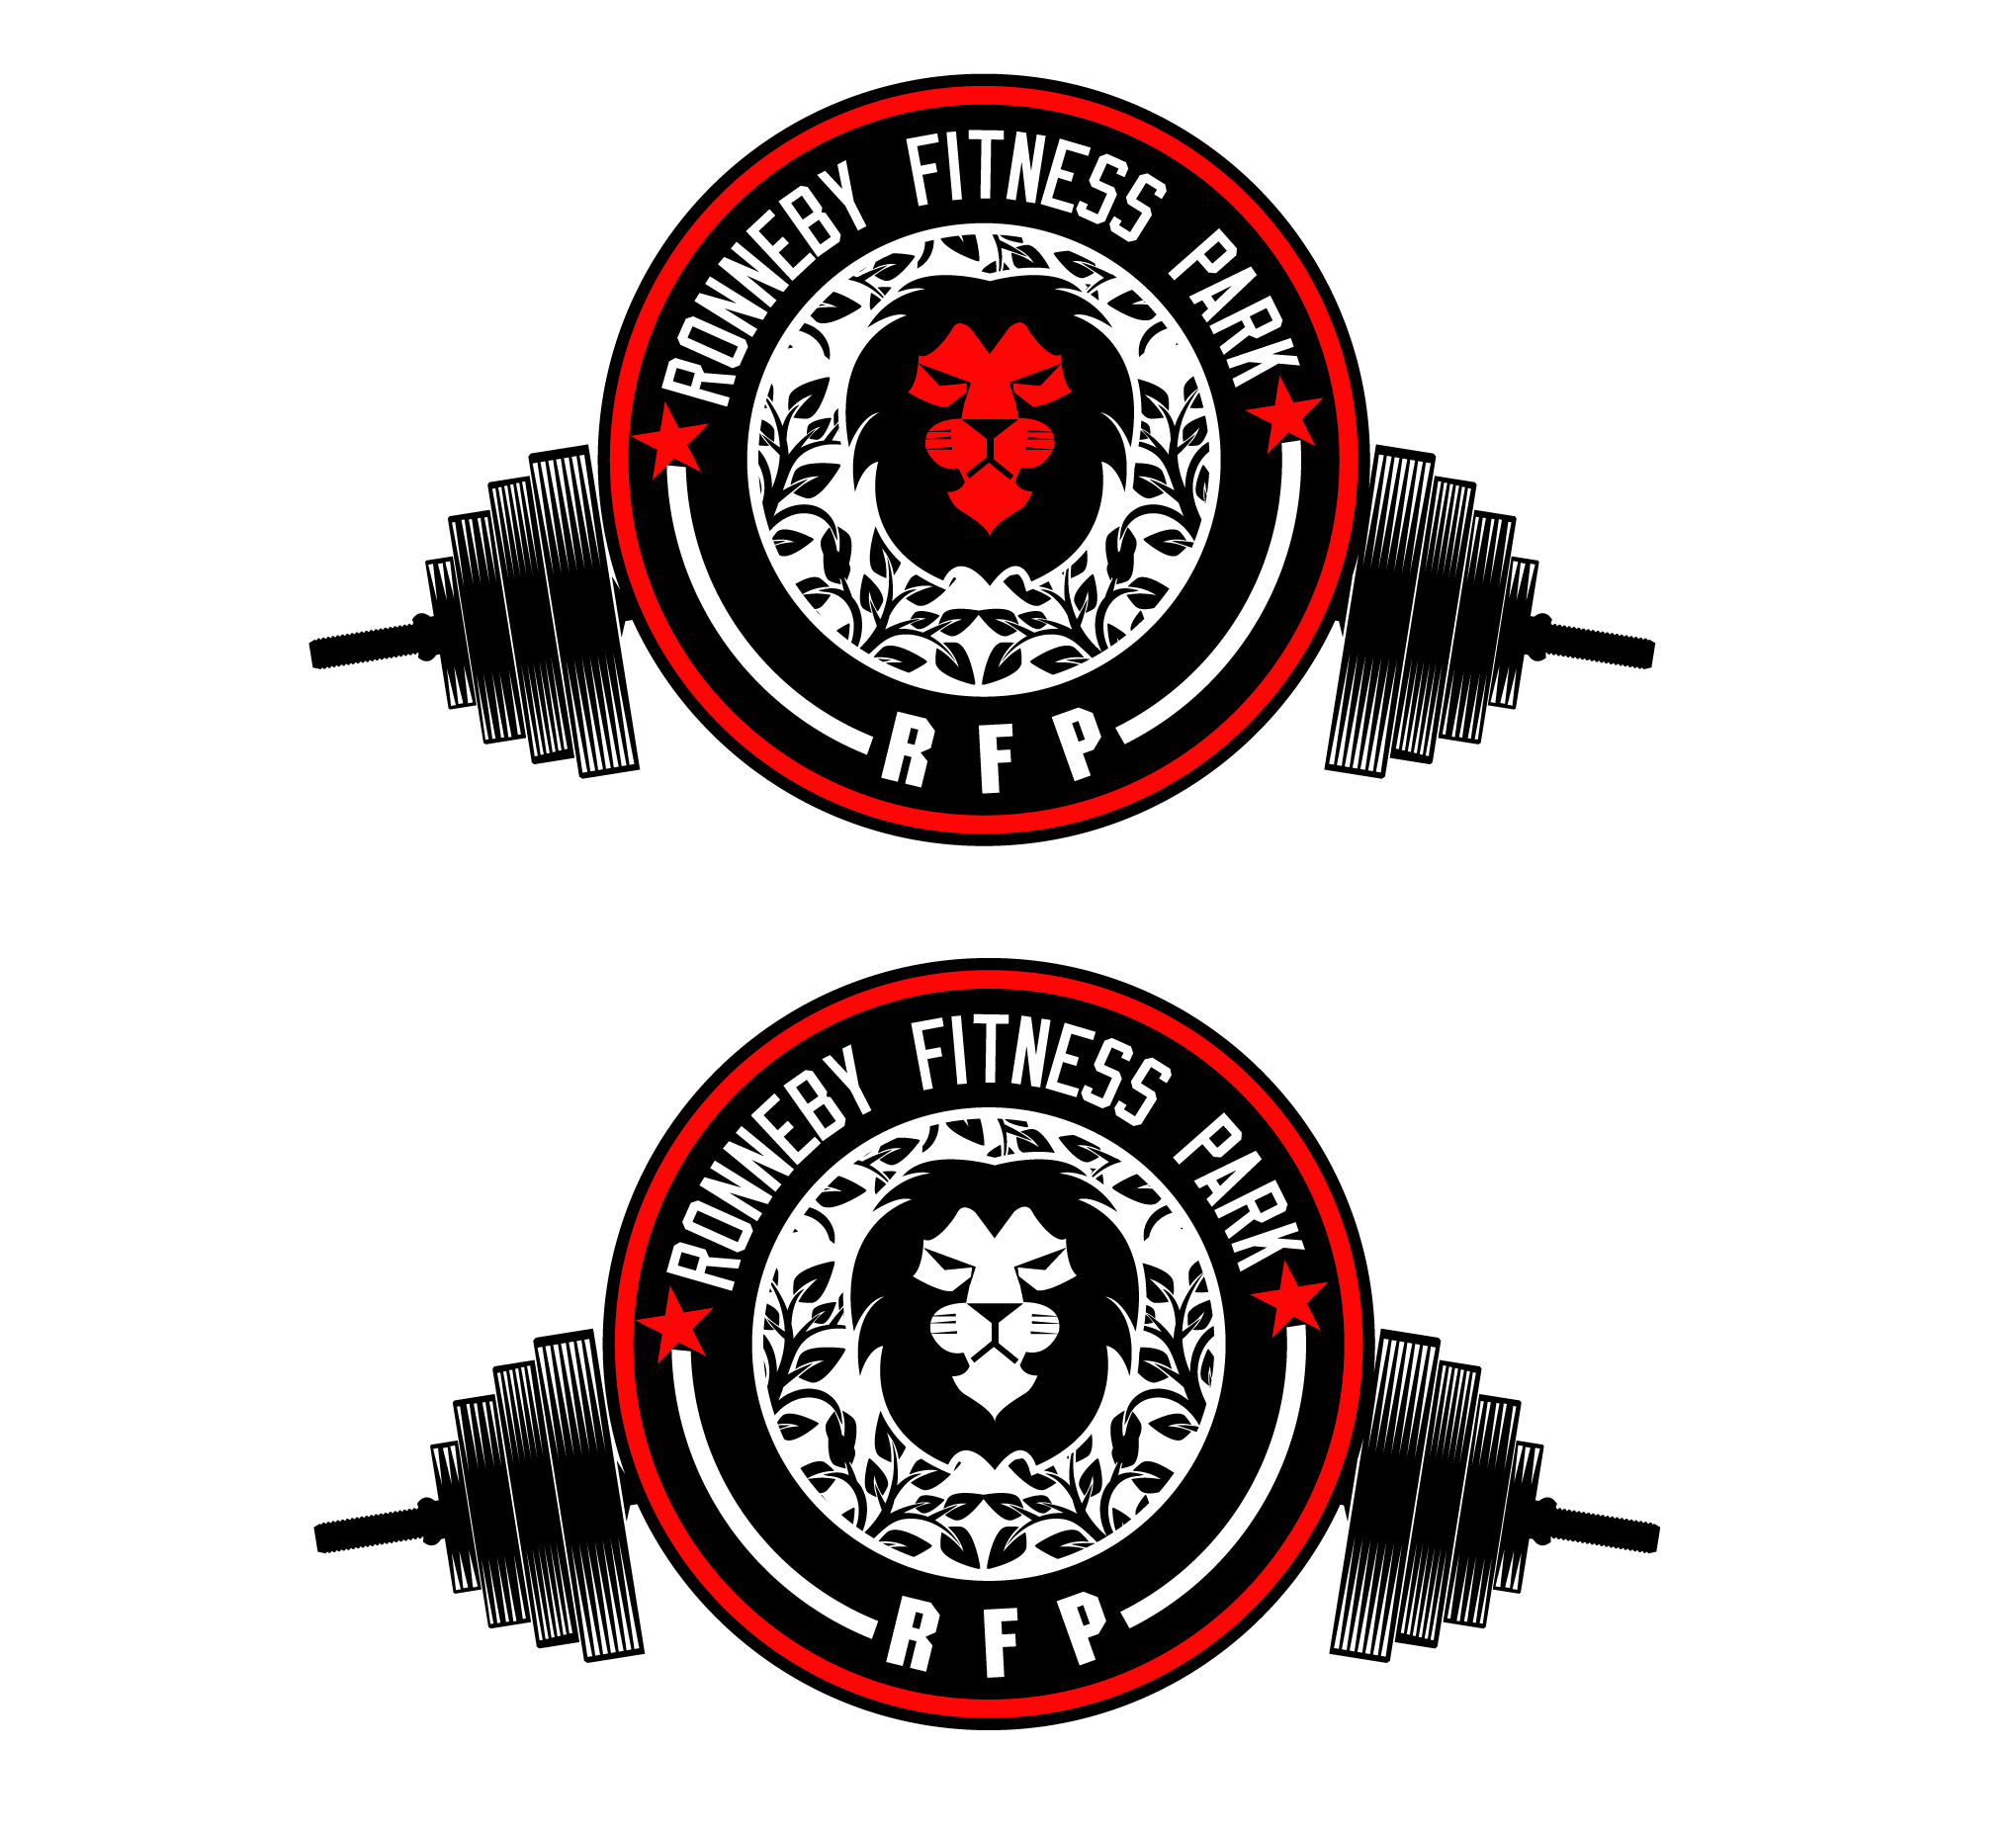 Create a Cool Logo that people will remeber for a Outdoor Obstacle course/combined outdoor gym.